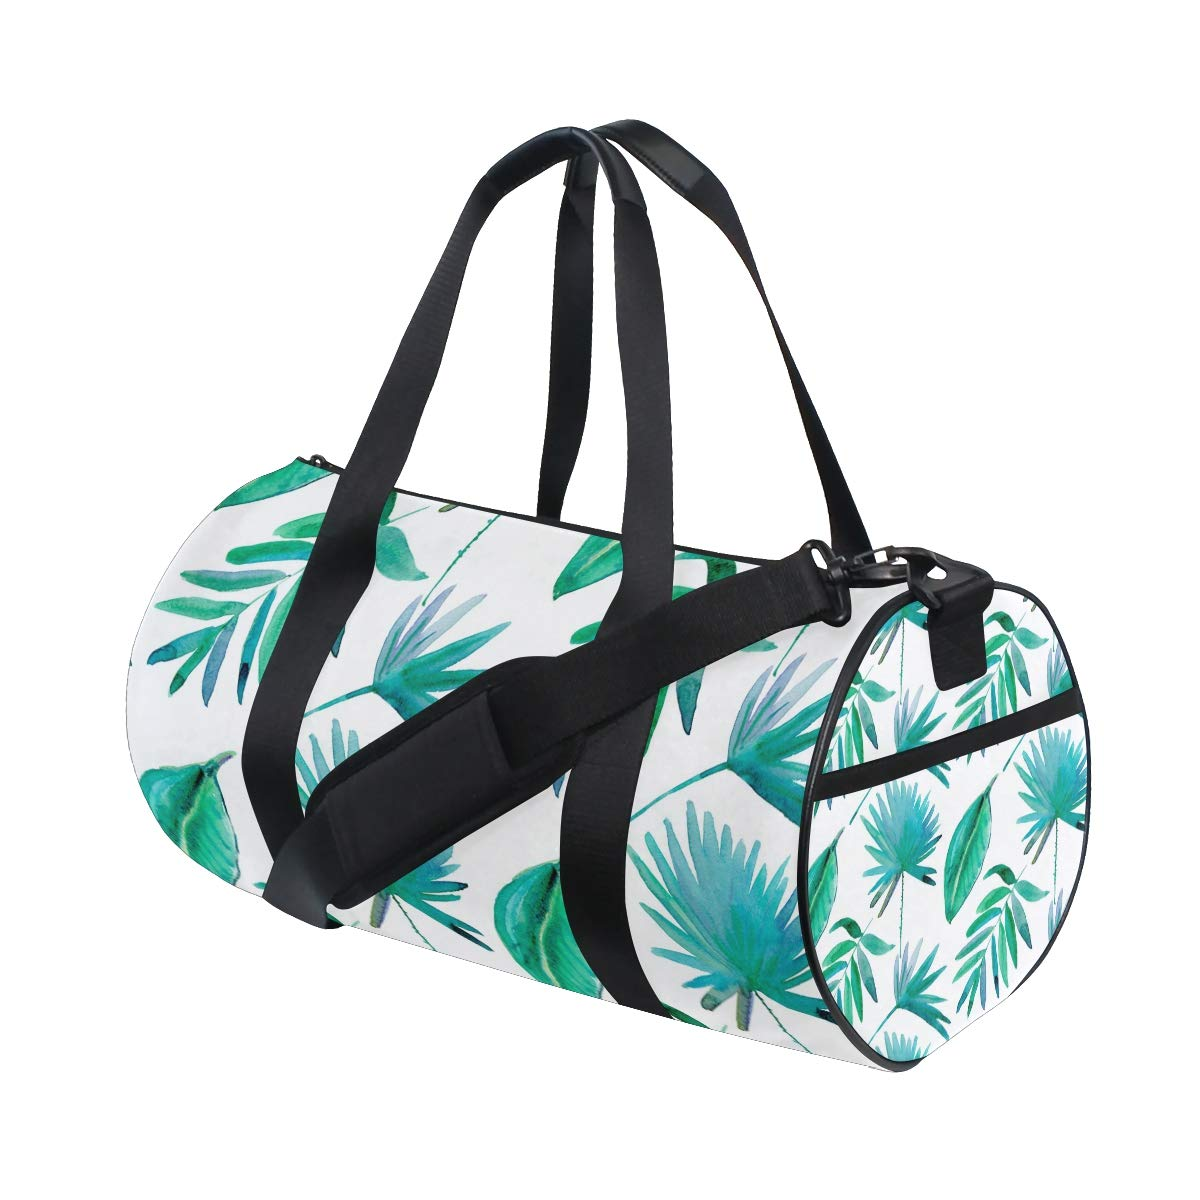 Tropical Leaf Yoga Sports Gym Duffle Bags Tote Sling Travel Bag Patterned Canvas with Pocket and Zipper For Men Women Bag